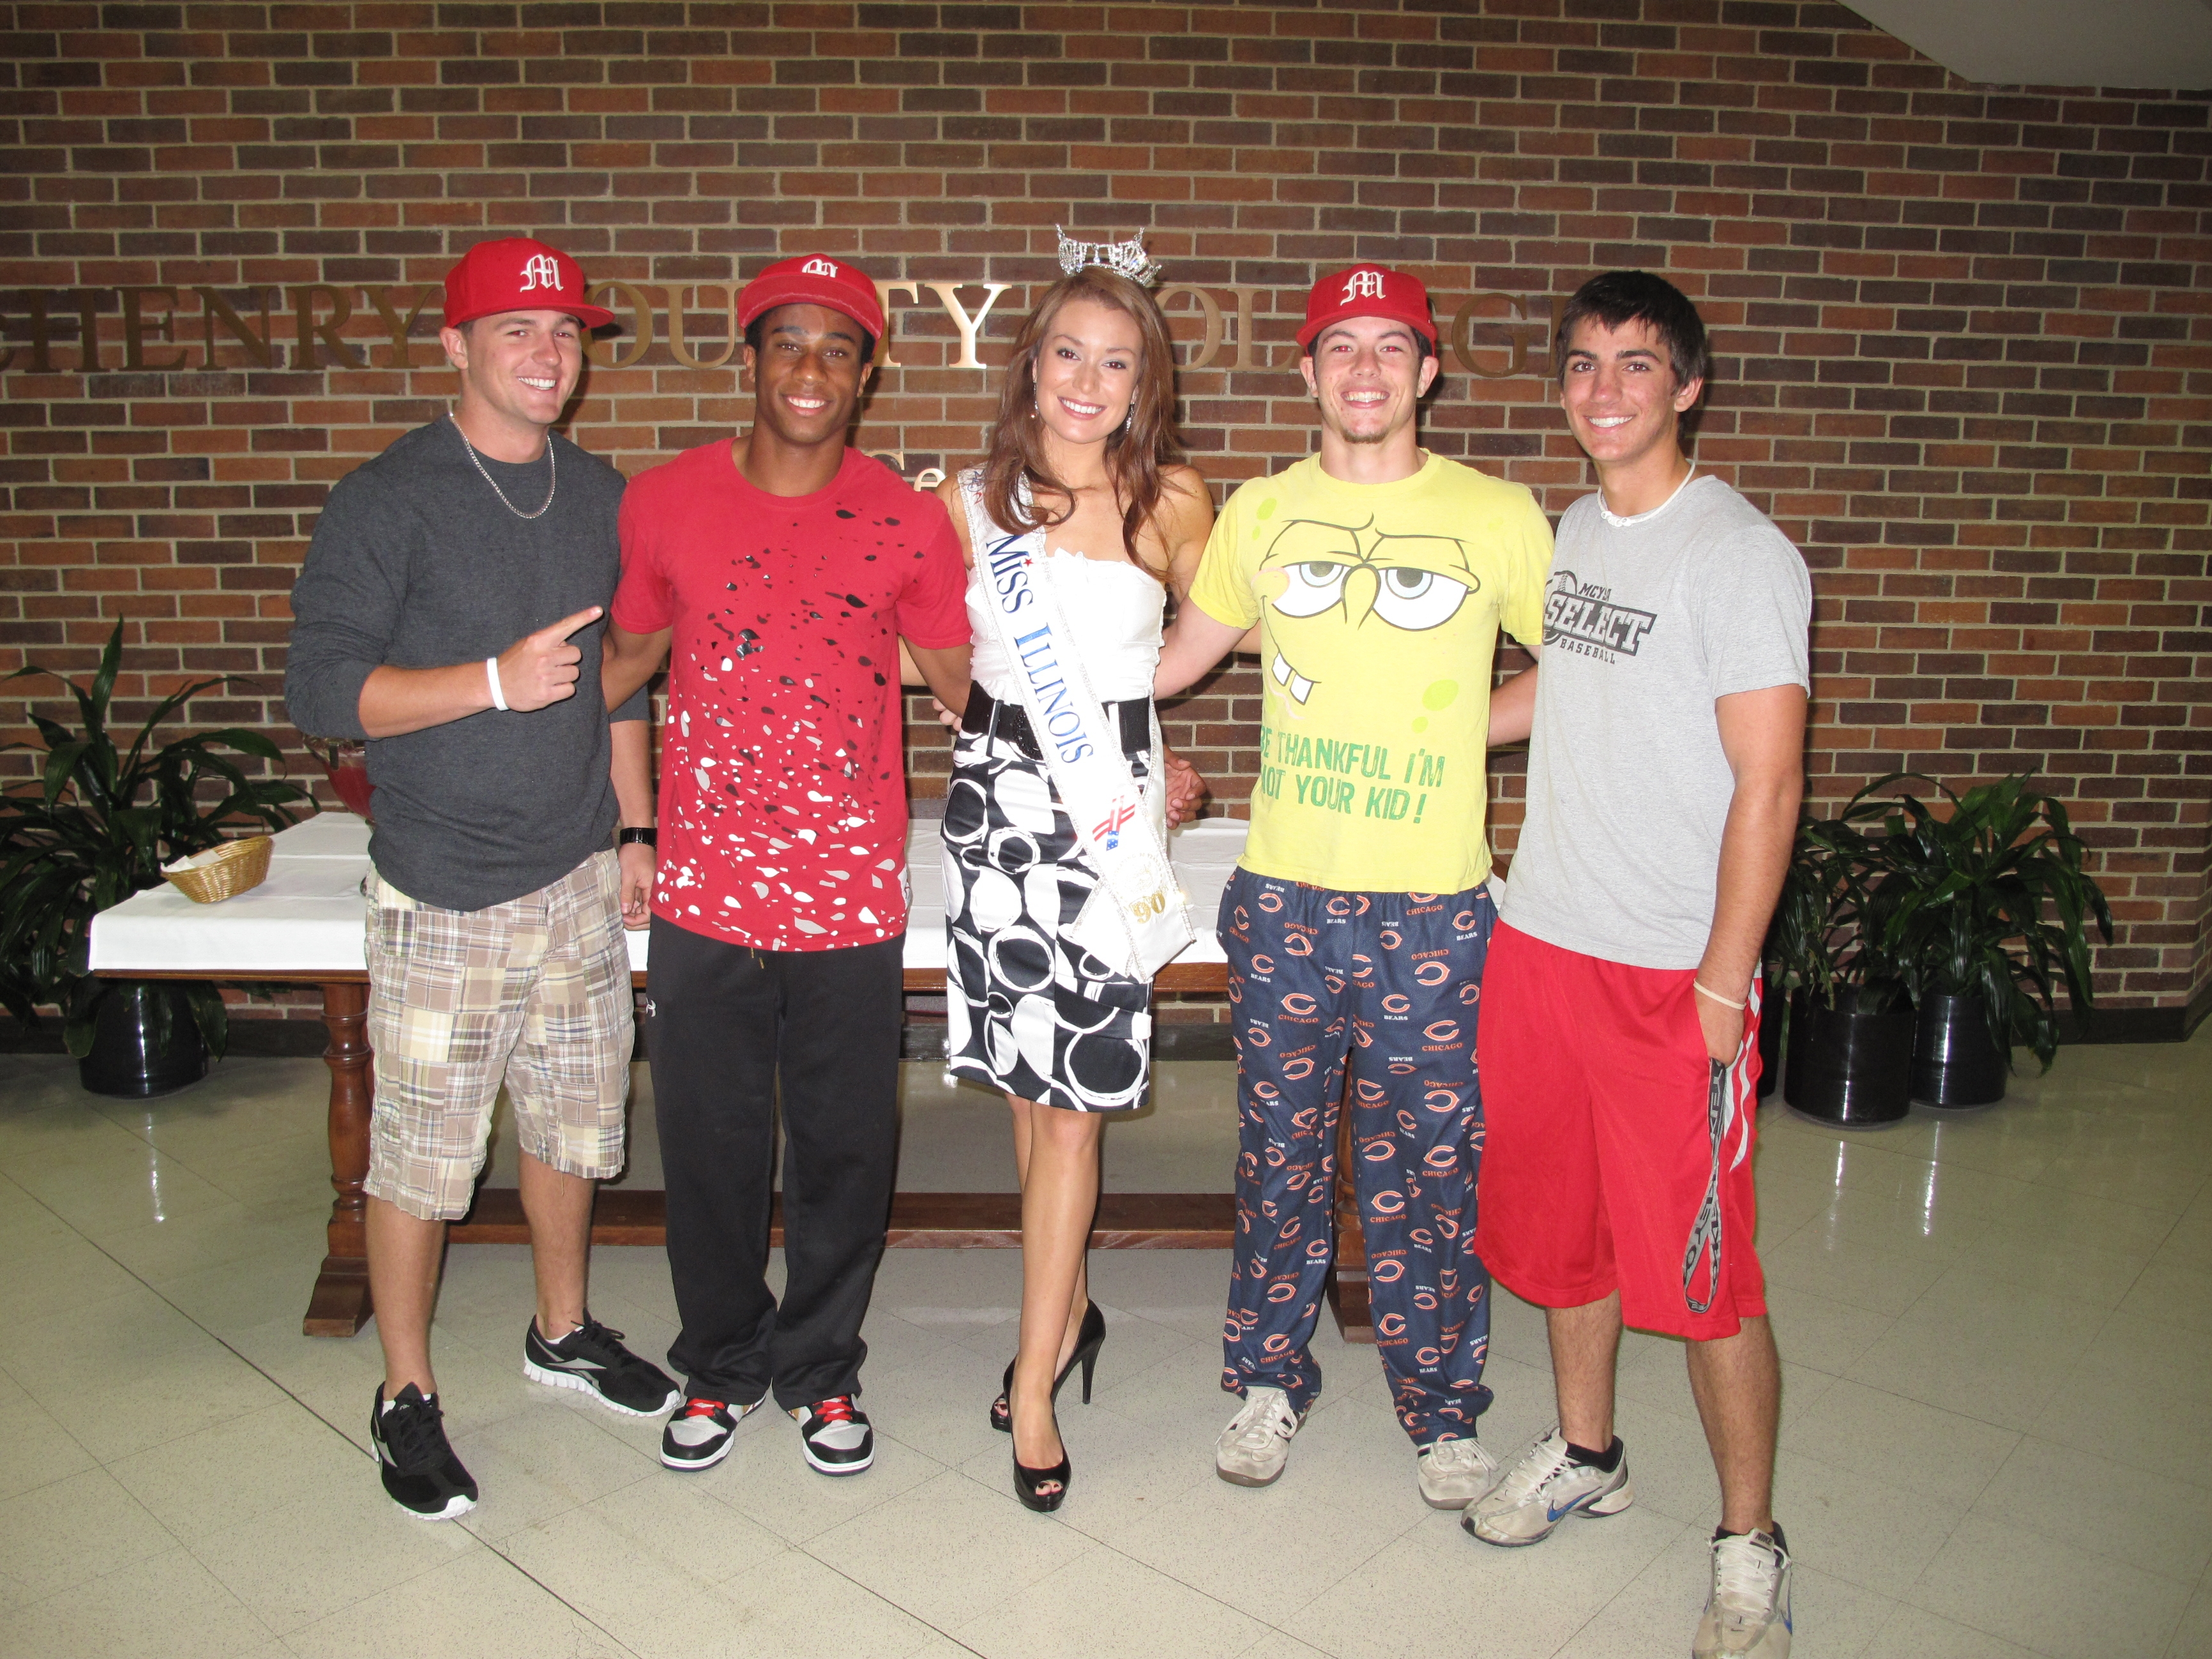 Illinois mchenry county huntley - Miss Illinois Hannah Smith Meets With Members Of The Mchenry County College Baseball Team Photo Provided By Mchenry County College